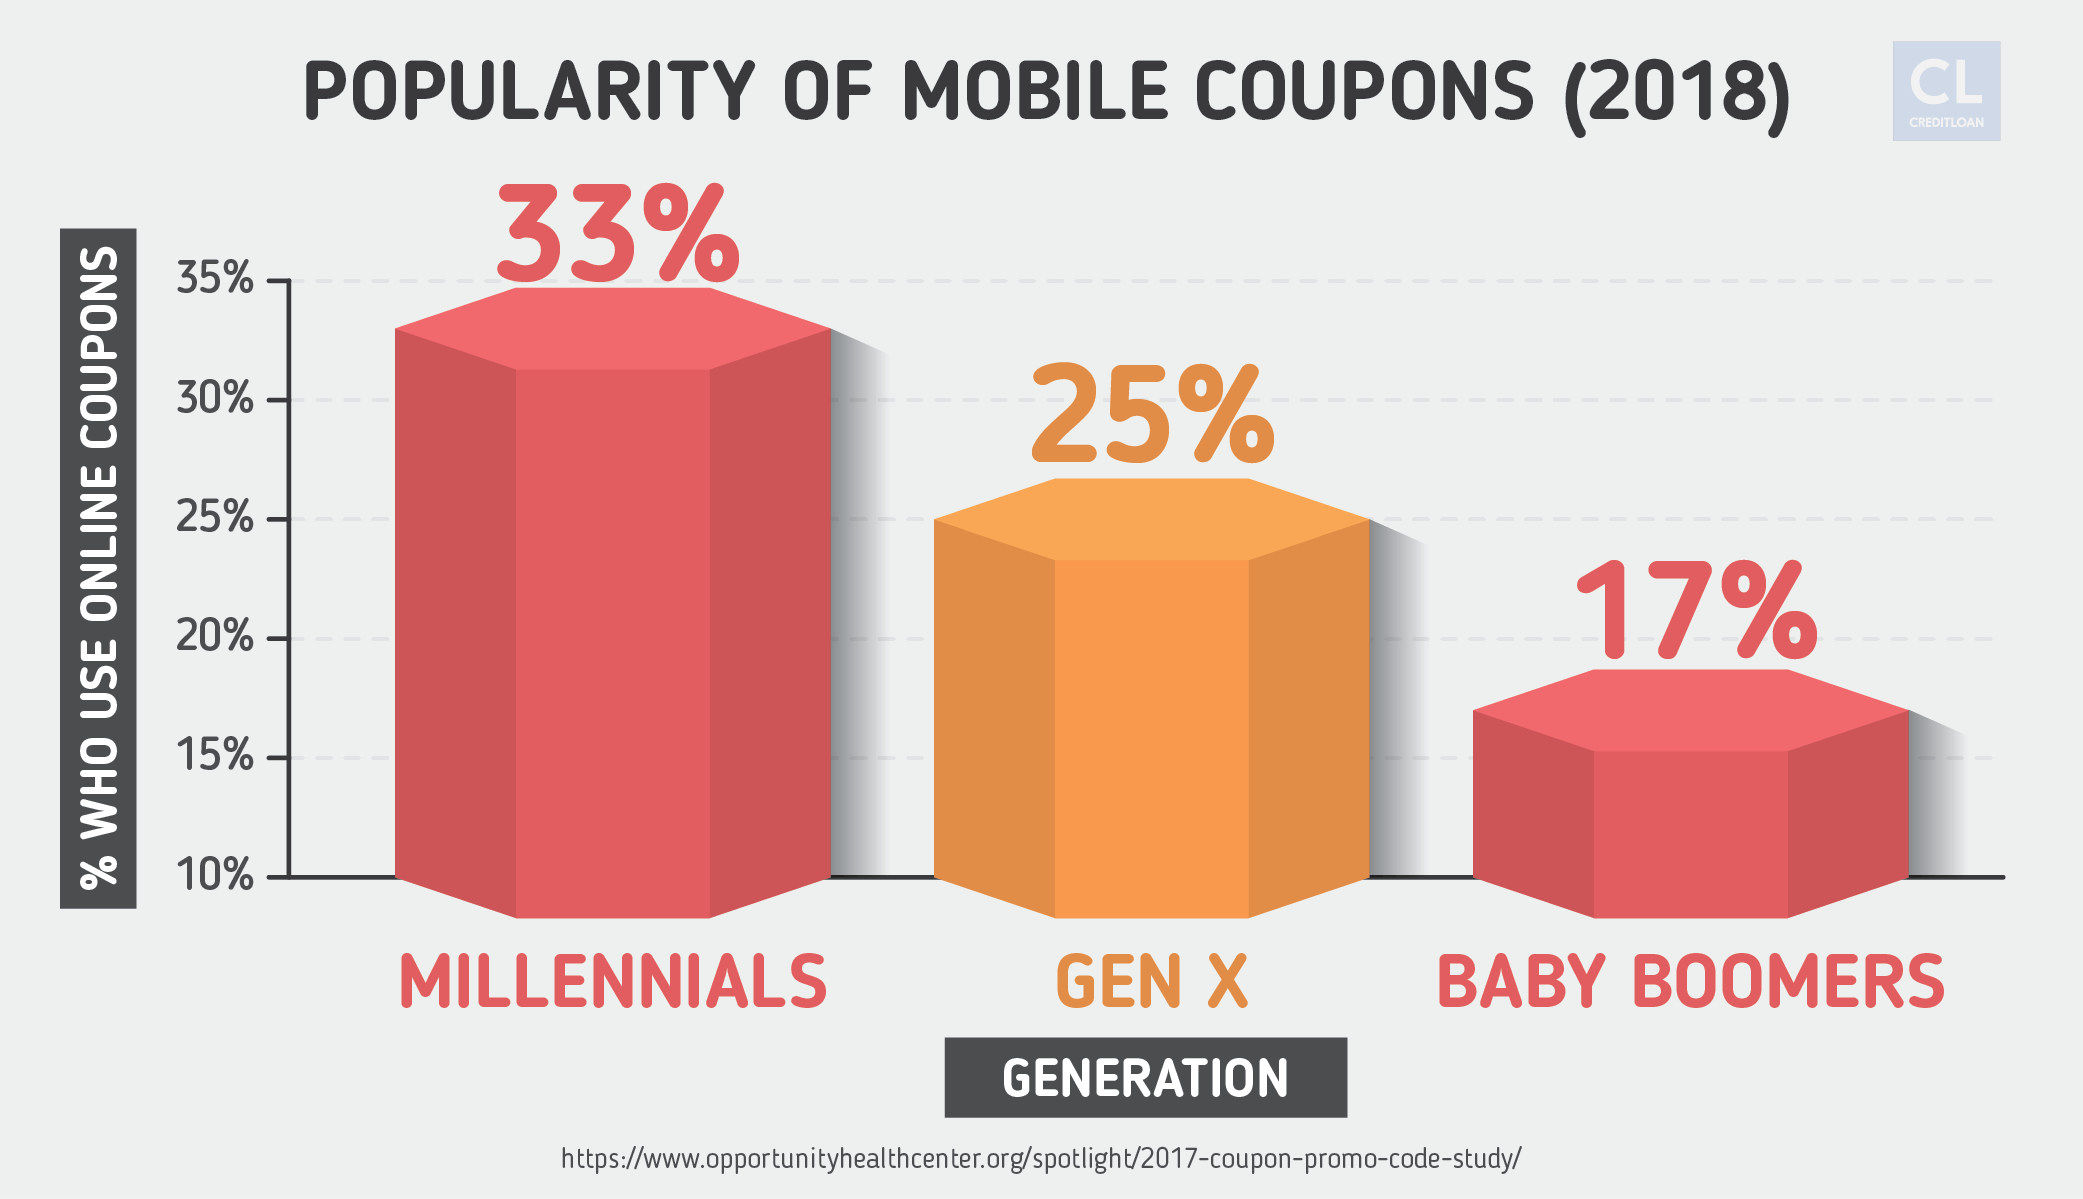 Popularity of Mobile Coupons Statistics